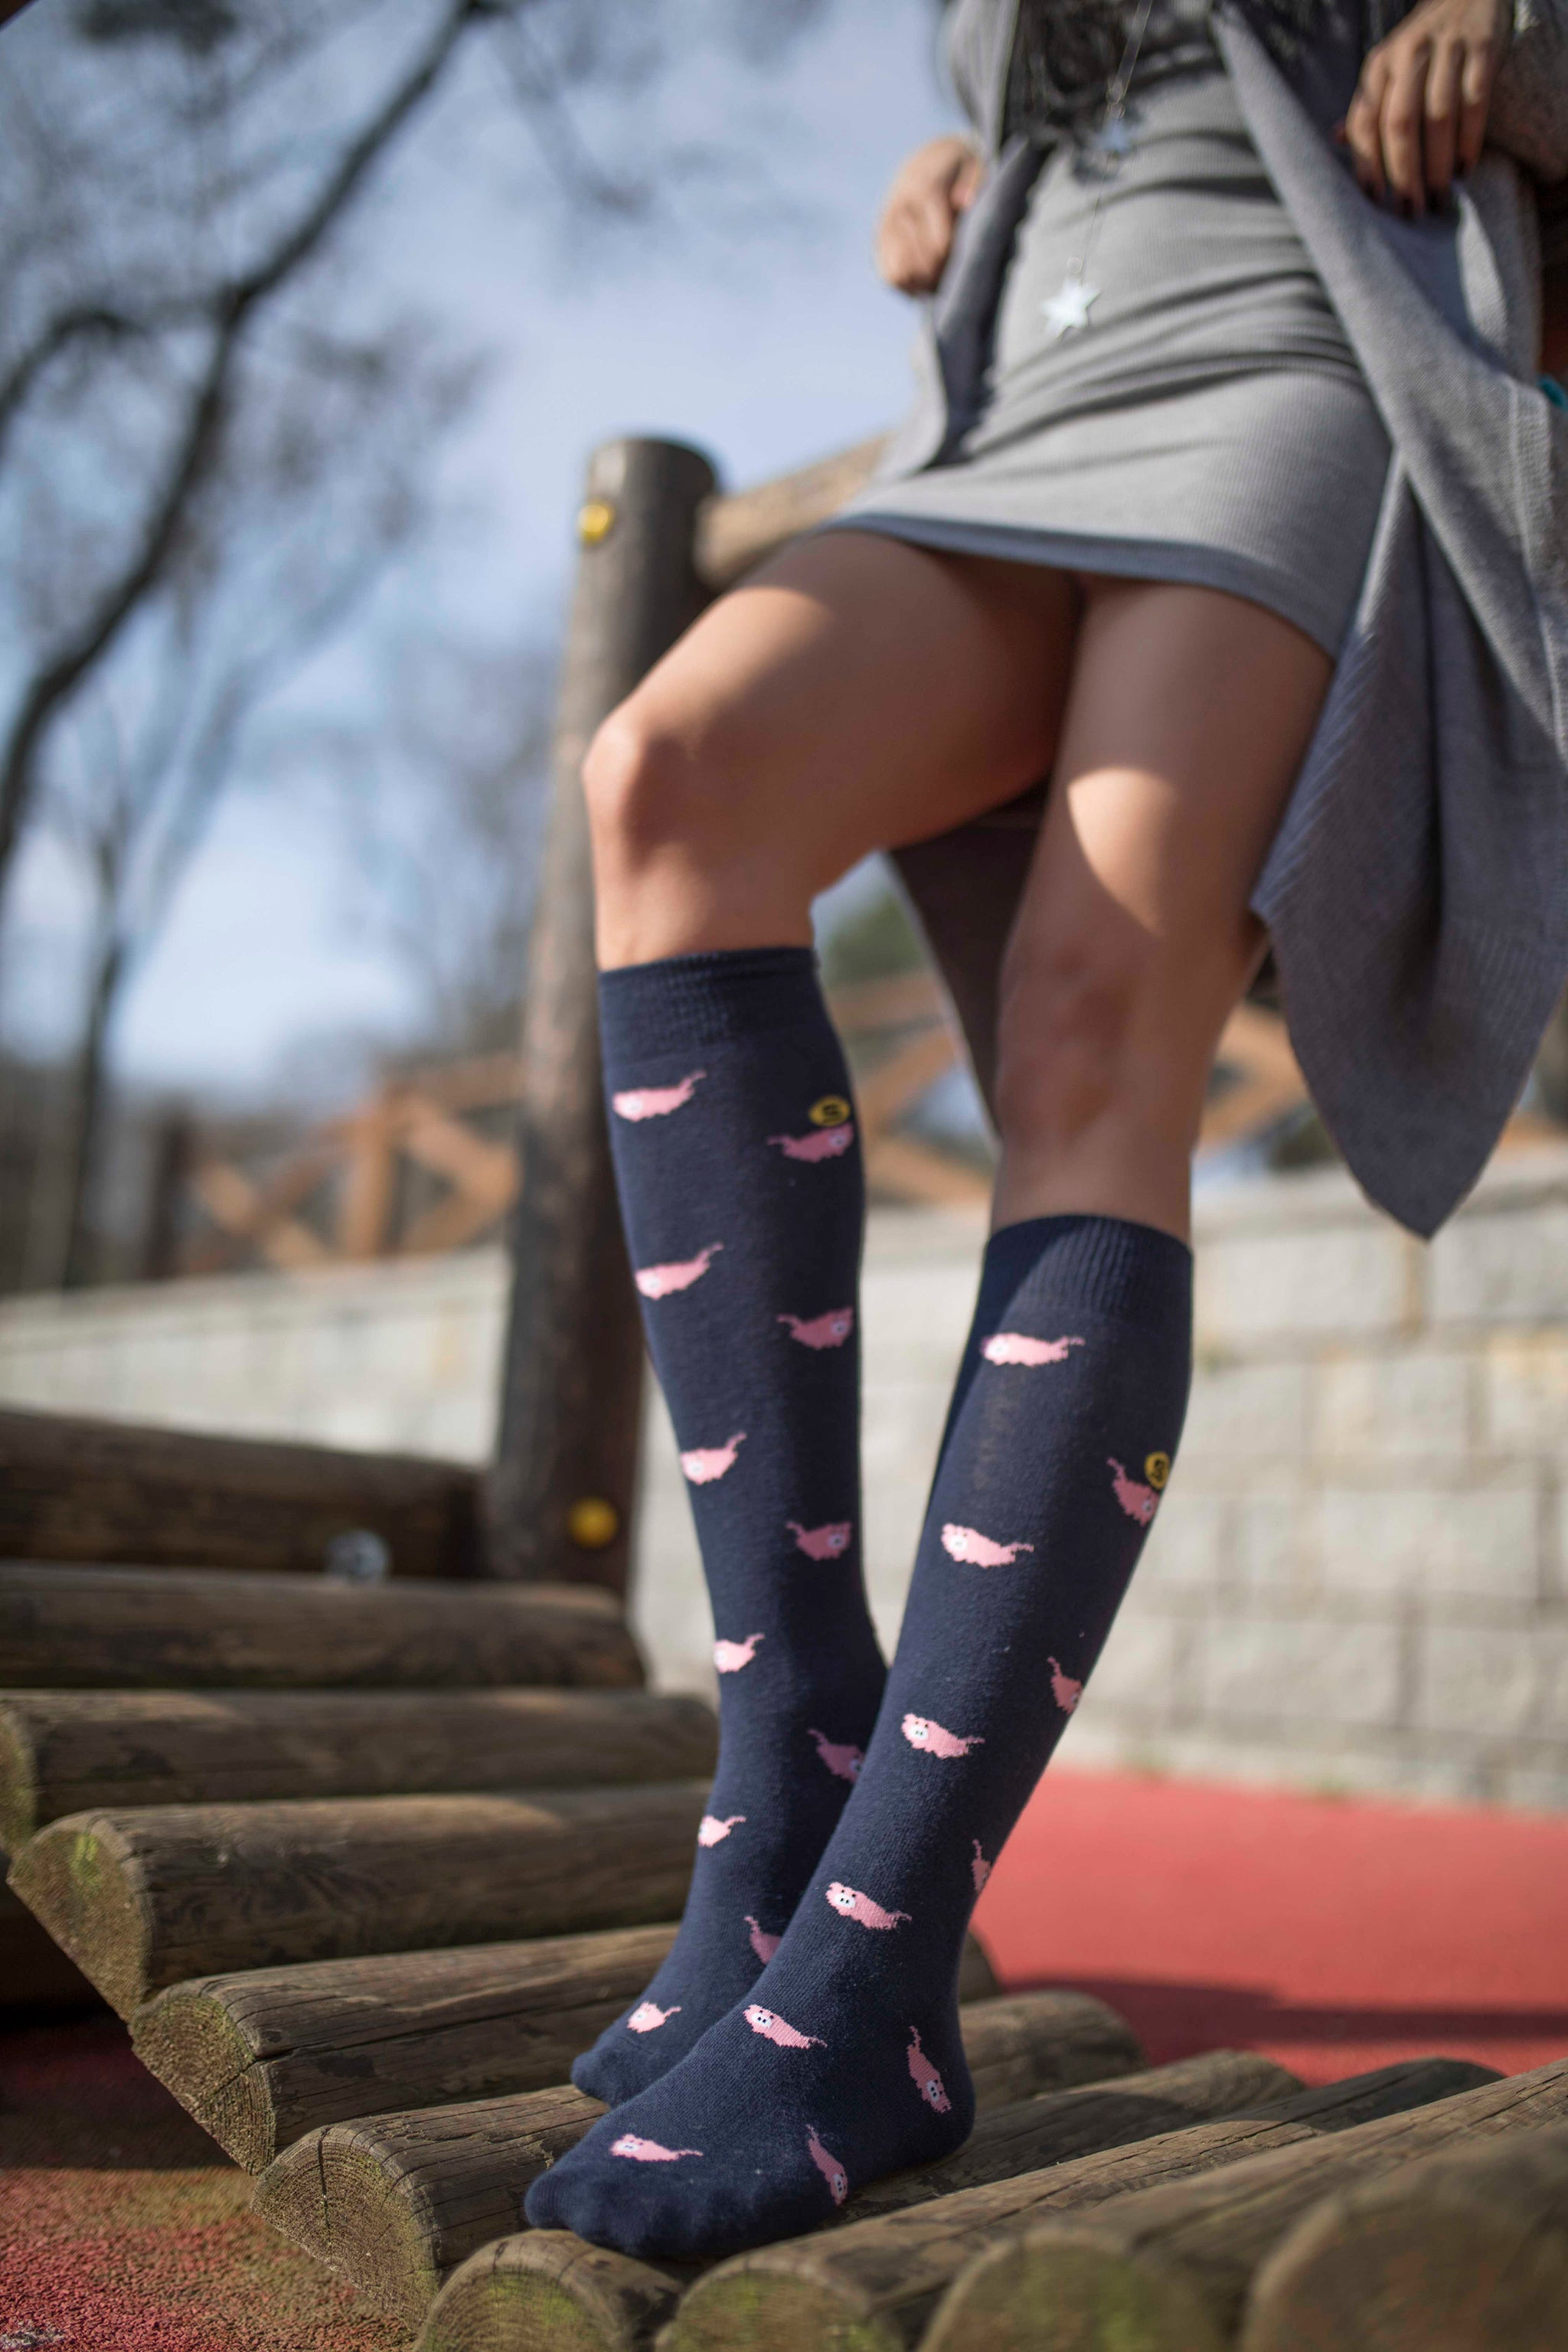 Women's Pig Knee High Socks